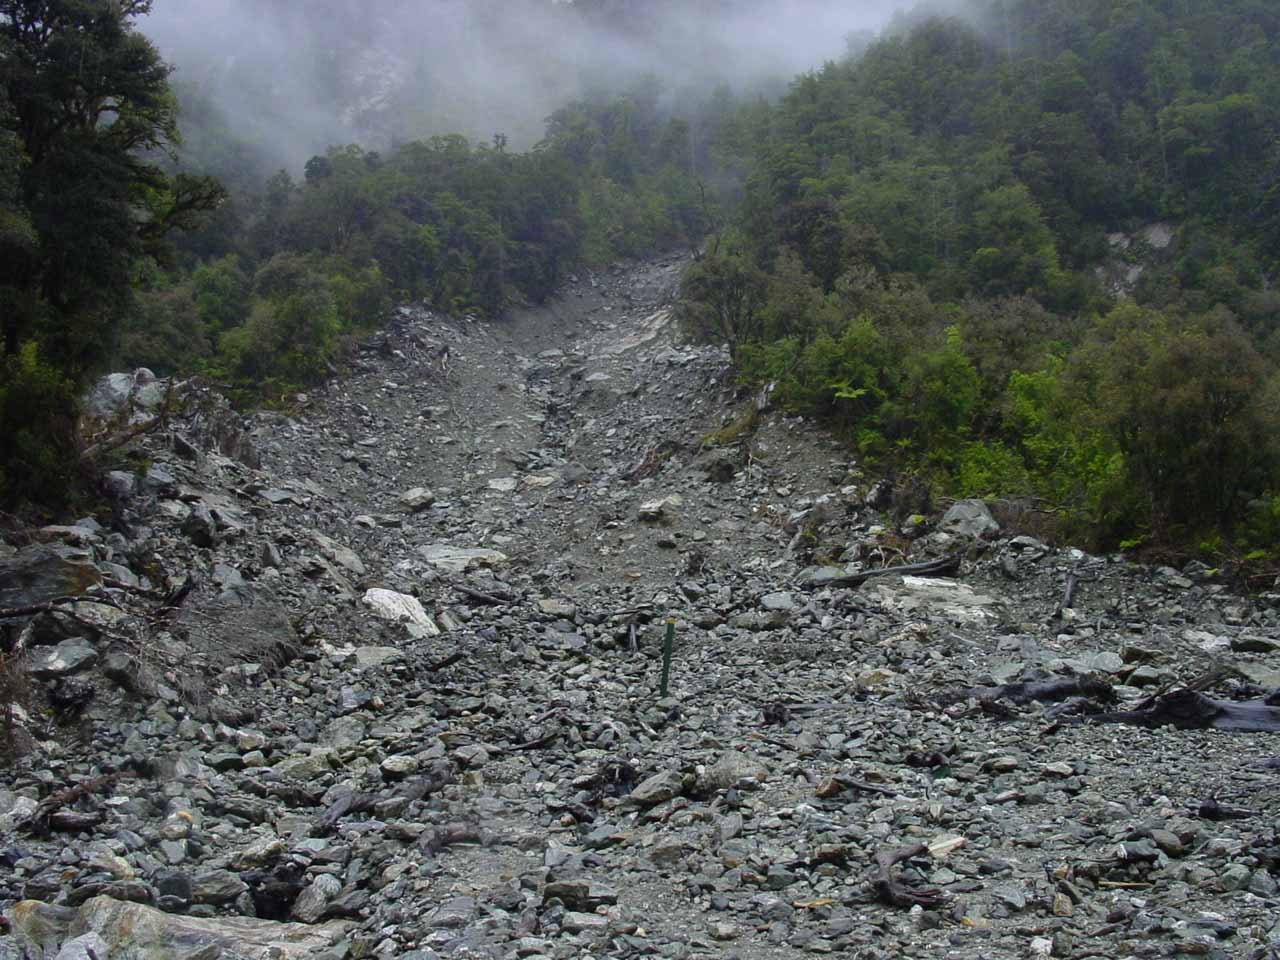 Traversing one of the more extensive landslips, which seemed to be quite common in the history of the Milford Track